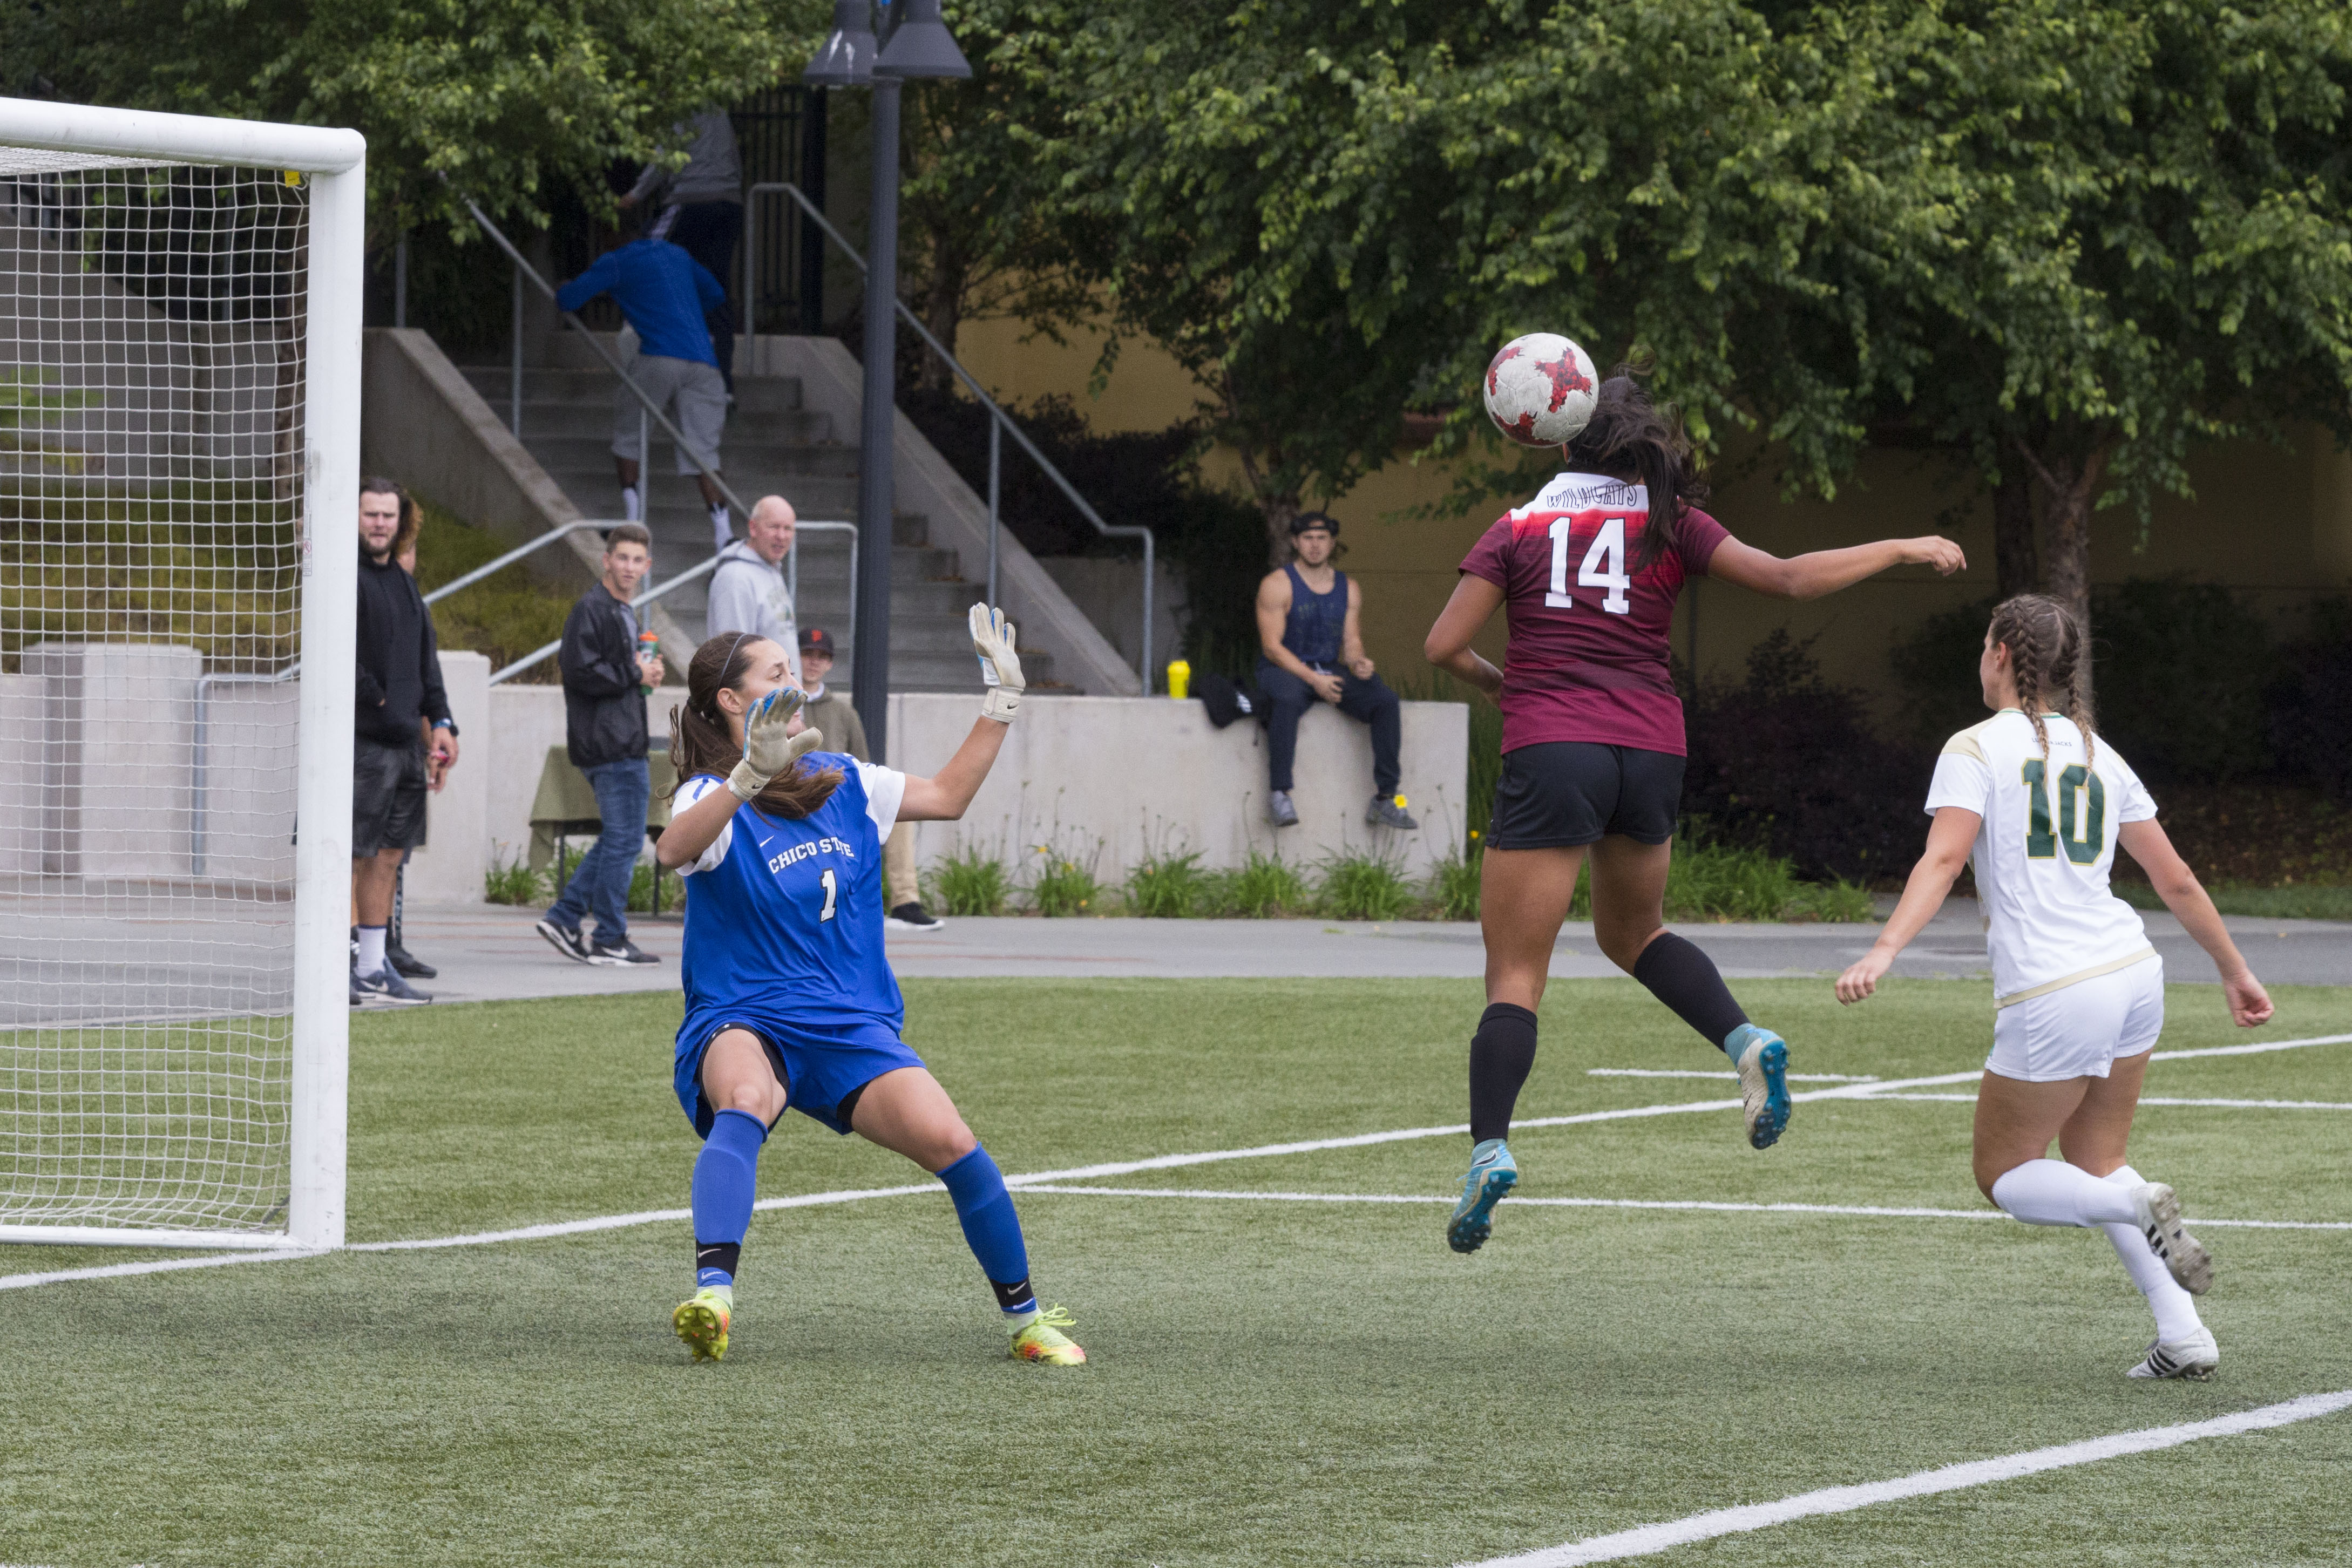 Brenna Meier (#1) Protects the goal as Jazmine Carranza takes a header while defending against HSU player Jacquelyn Dompier. | Photo by Ian Benjamin Finnegan Thompson